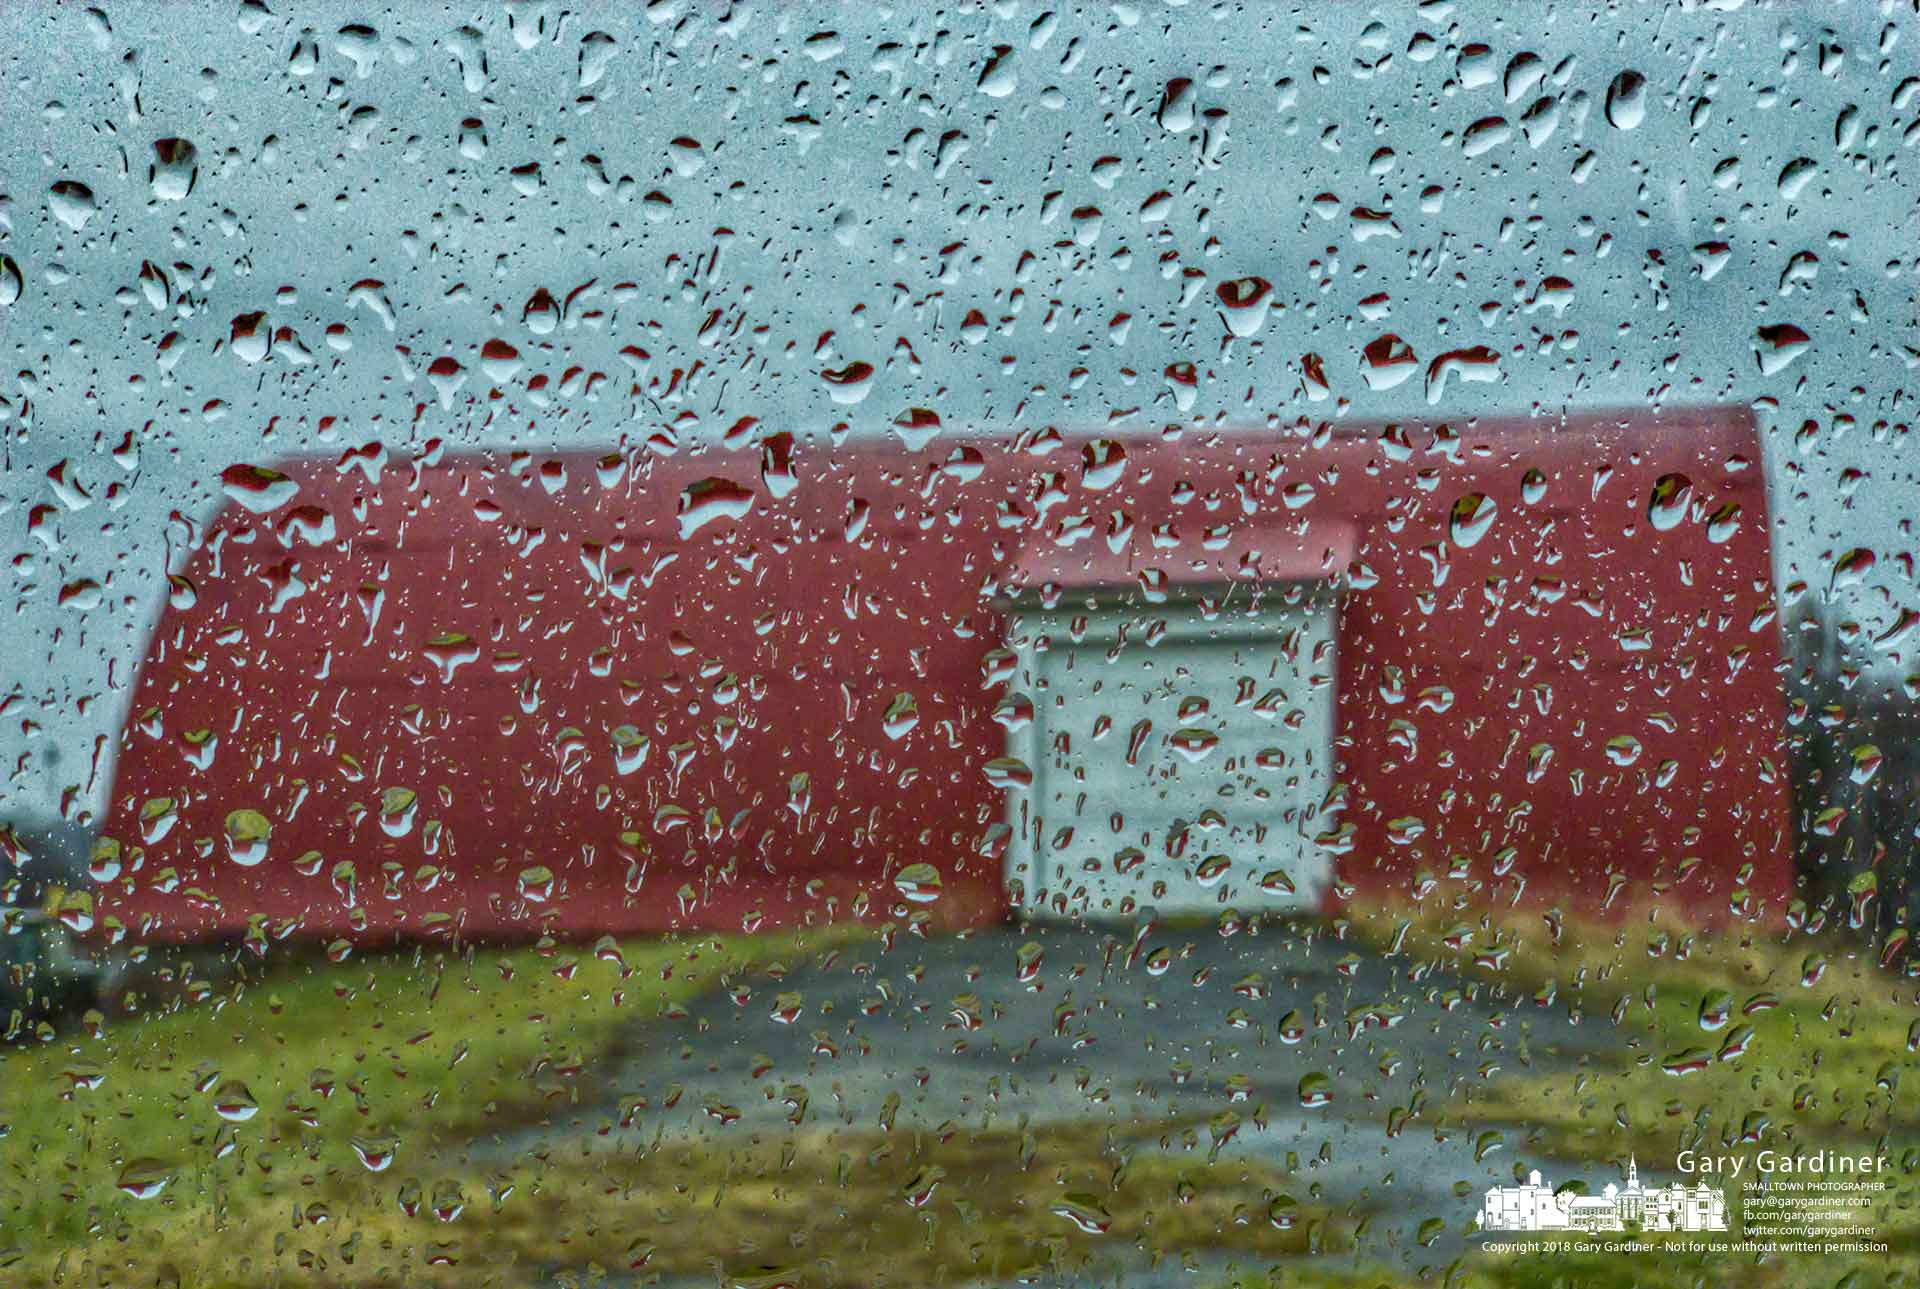 A morning rain covers the windows of a car parked at the Braun Farm barn with little hope for anything other than continued storms for the day. My Final Photo for Dec. 31, 2018.